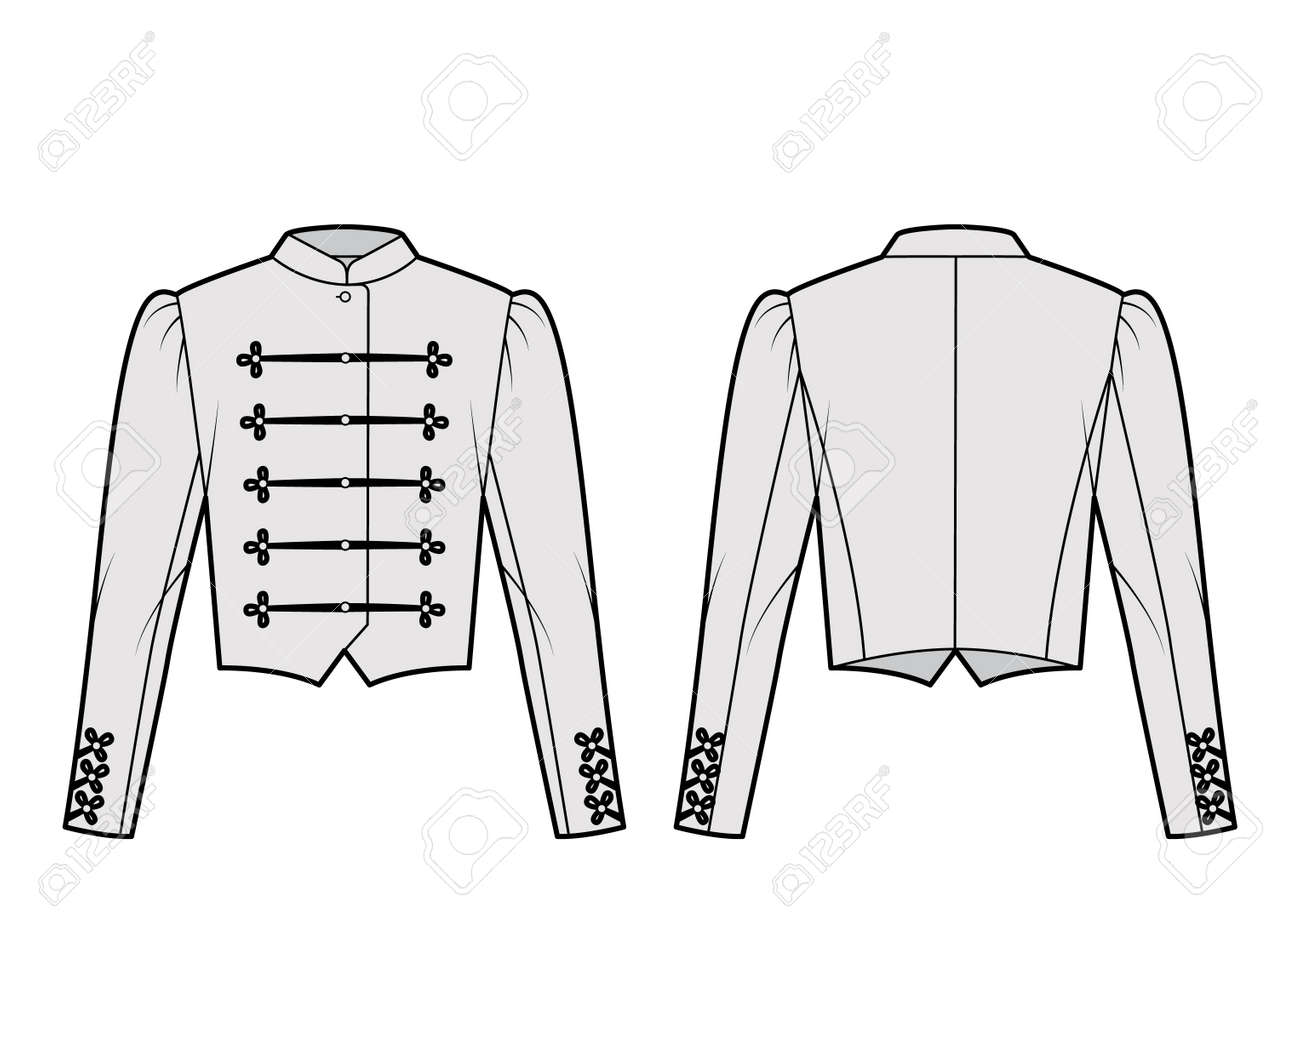 Majorette jacket technical fashion illustration with crop length, long leg o Mutton sleeves, stand collar, button frog closure. Flat blazer template front, back grey color style. Women, men CAD mockup - 166898957